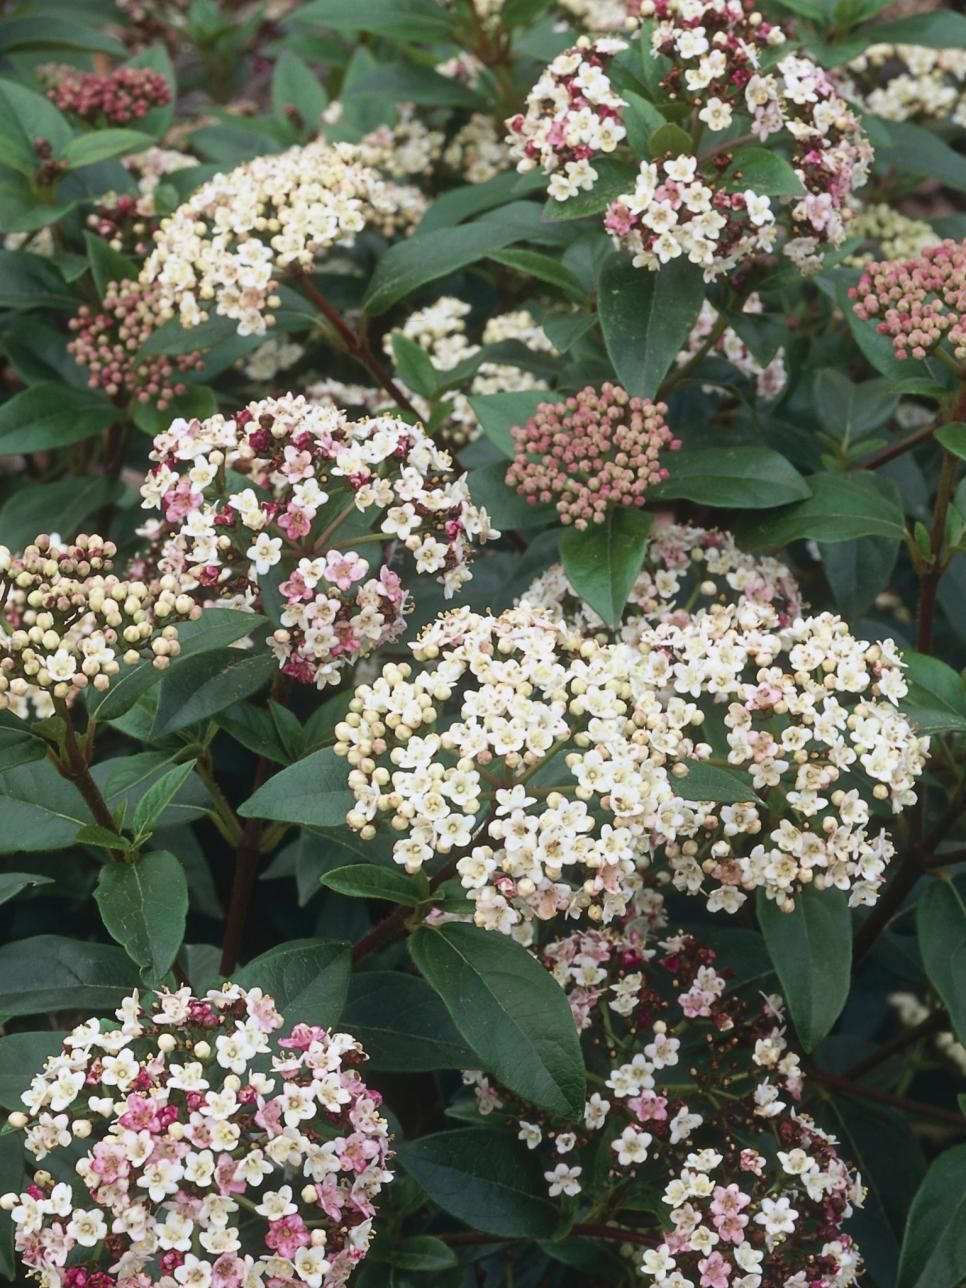 Perennials for shade pinterest evergreen shrubs white flowers viburnum viburnum tinus eve price a dense evergreen shrub with clusters of white flowers followed by blue black fruits h 10 ft 3 m s 10 ft 3 m mightylinksfo